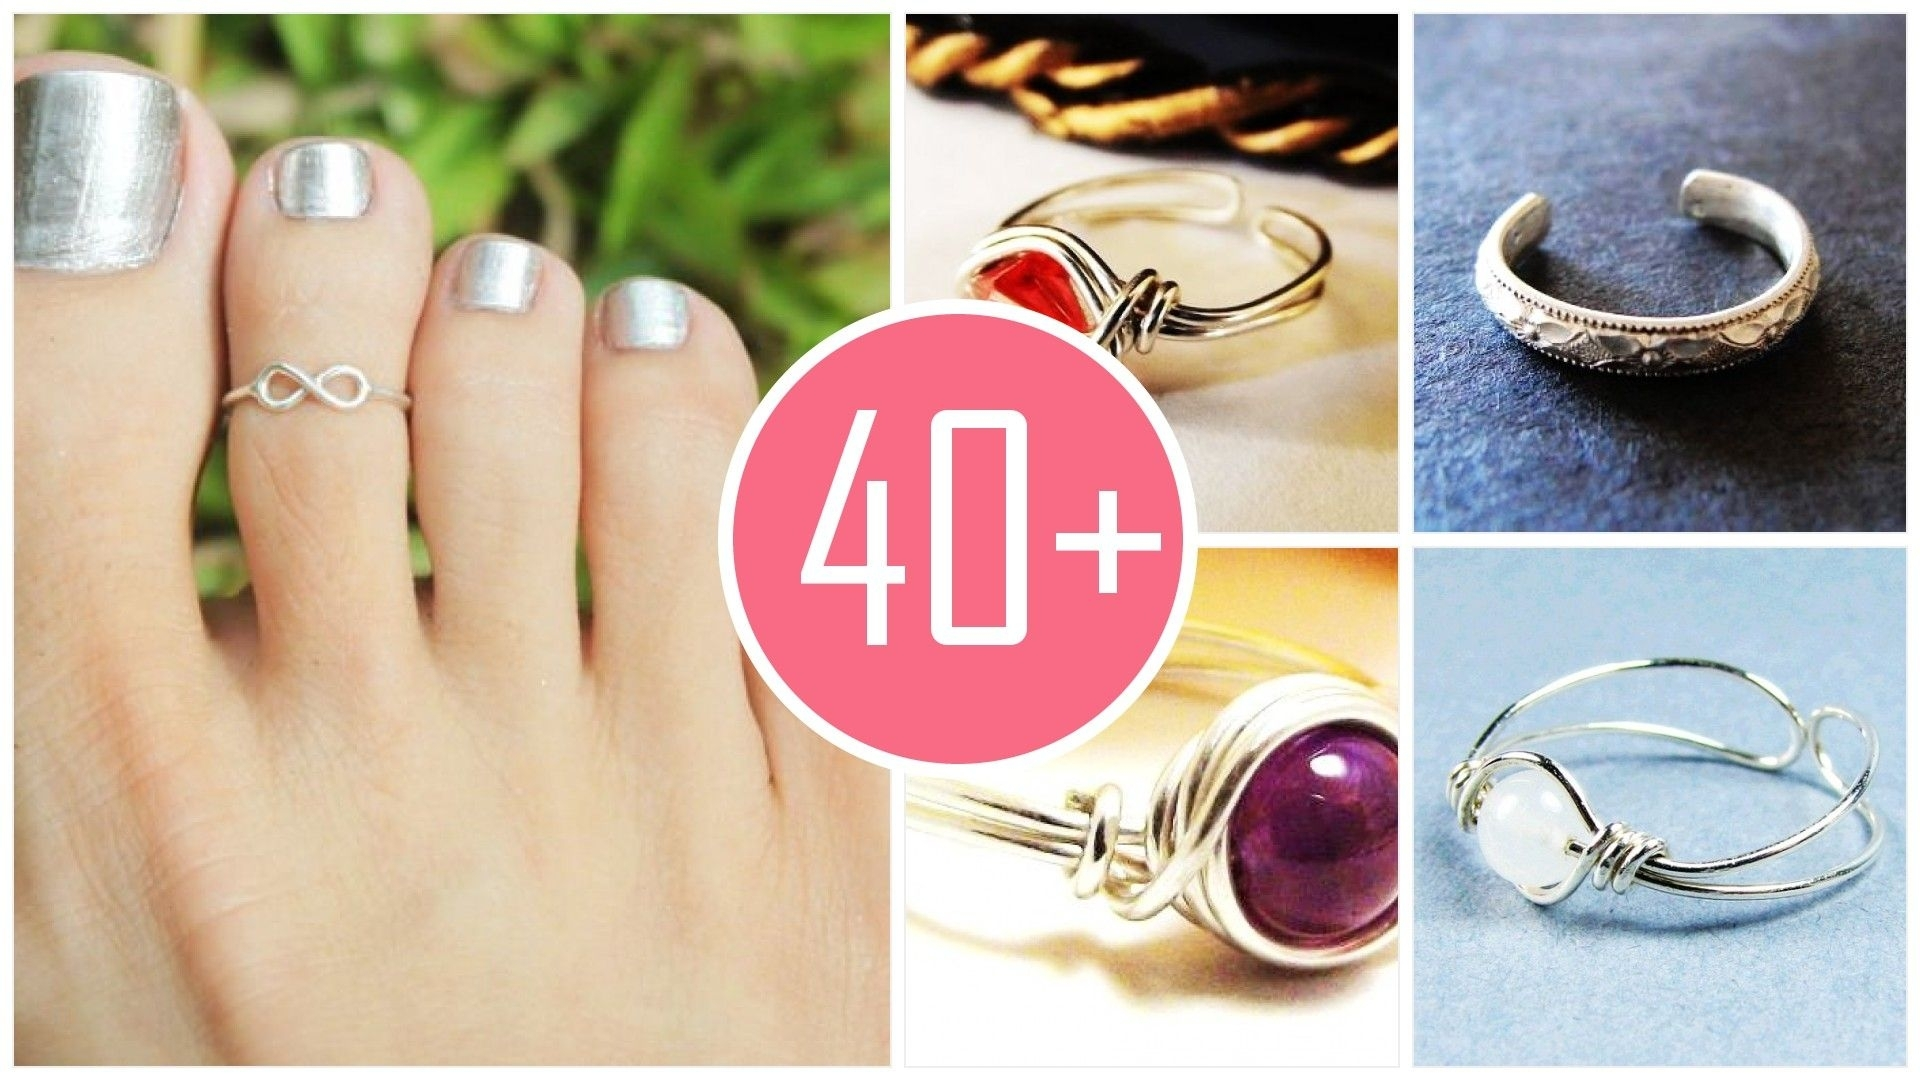 ☻ Let's To To The Party! Georgina Haig's Recommended Adjustable Within Recent White Gold Toe Rings (View 2 of 15)